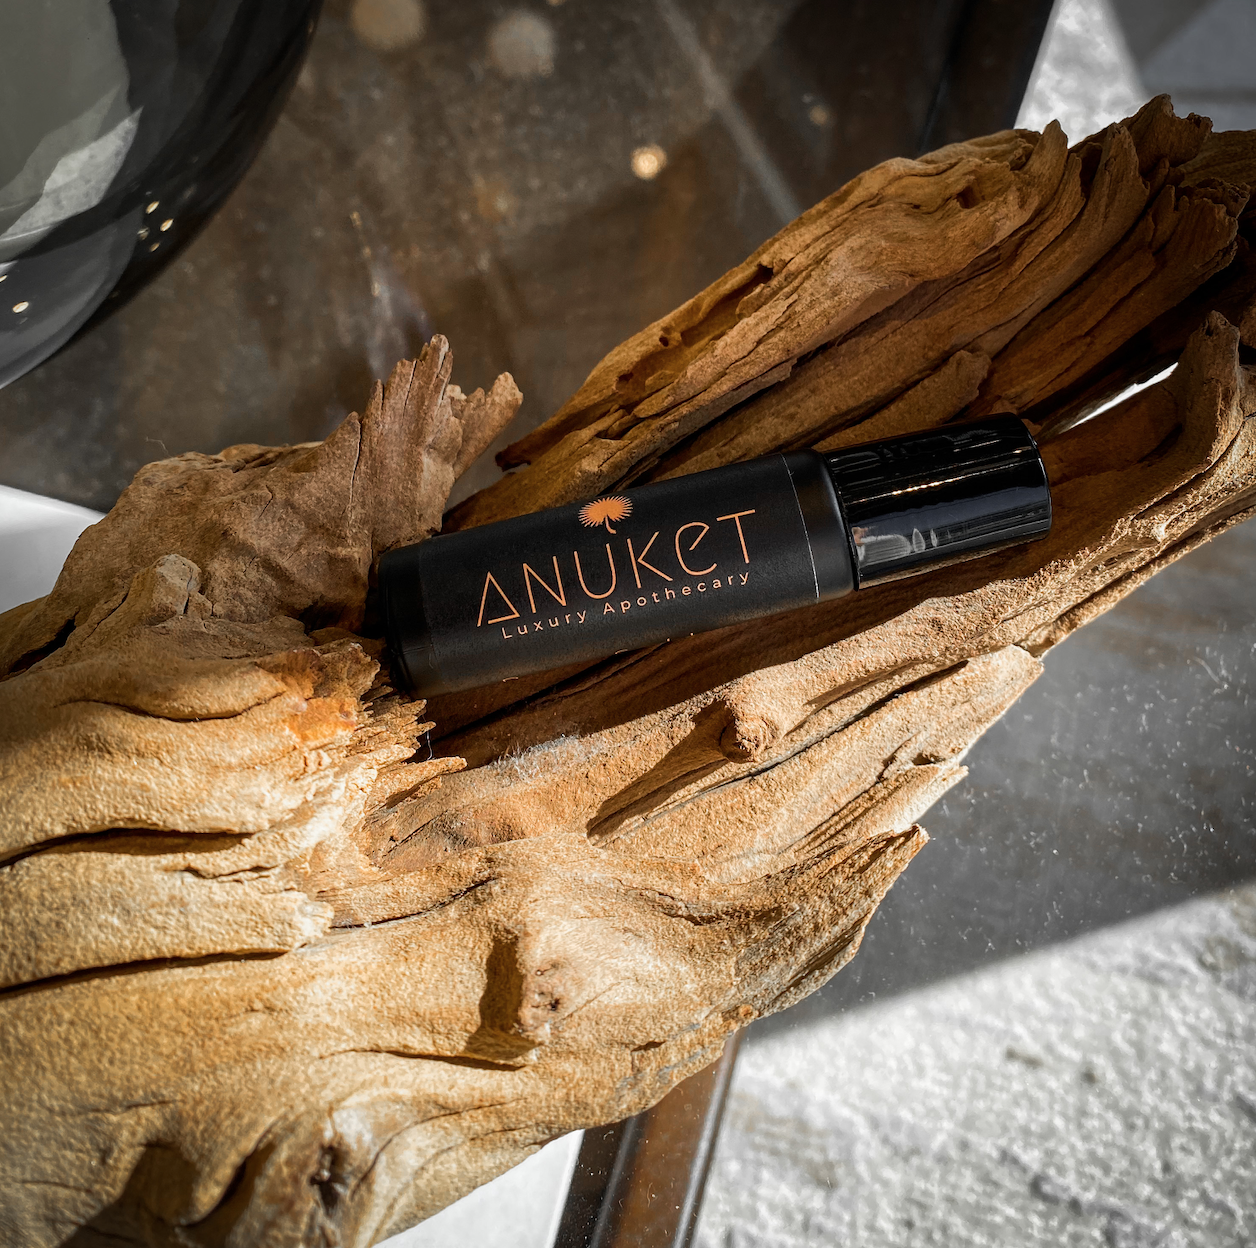 Anuket Luxury Pure Papyrus roll on fragrance oil in black bottle on a piece of driftwood on a glass table